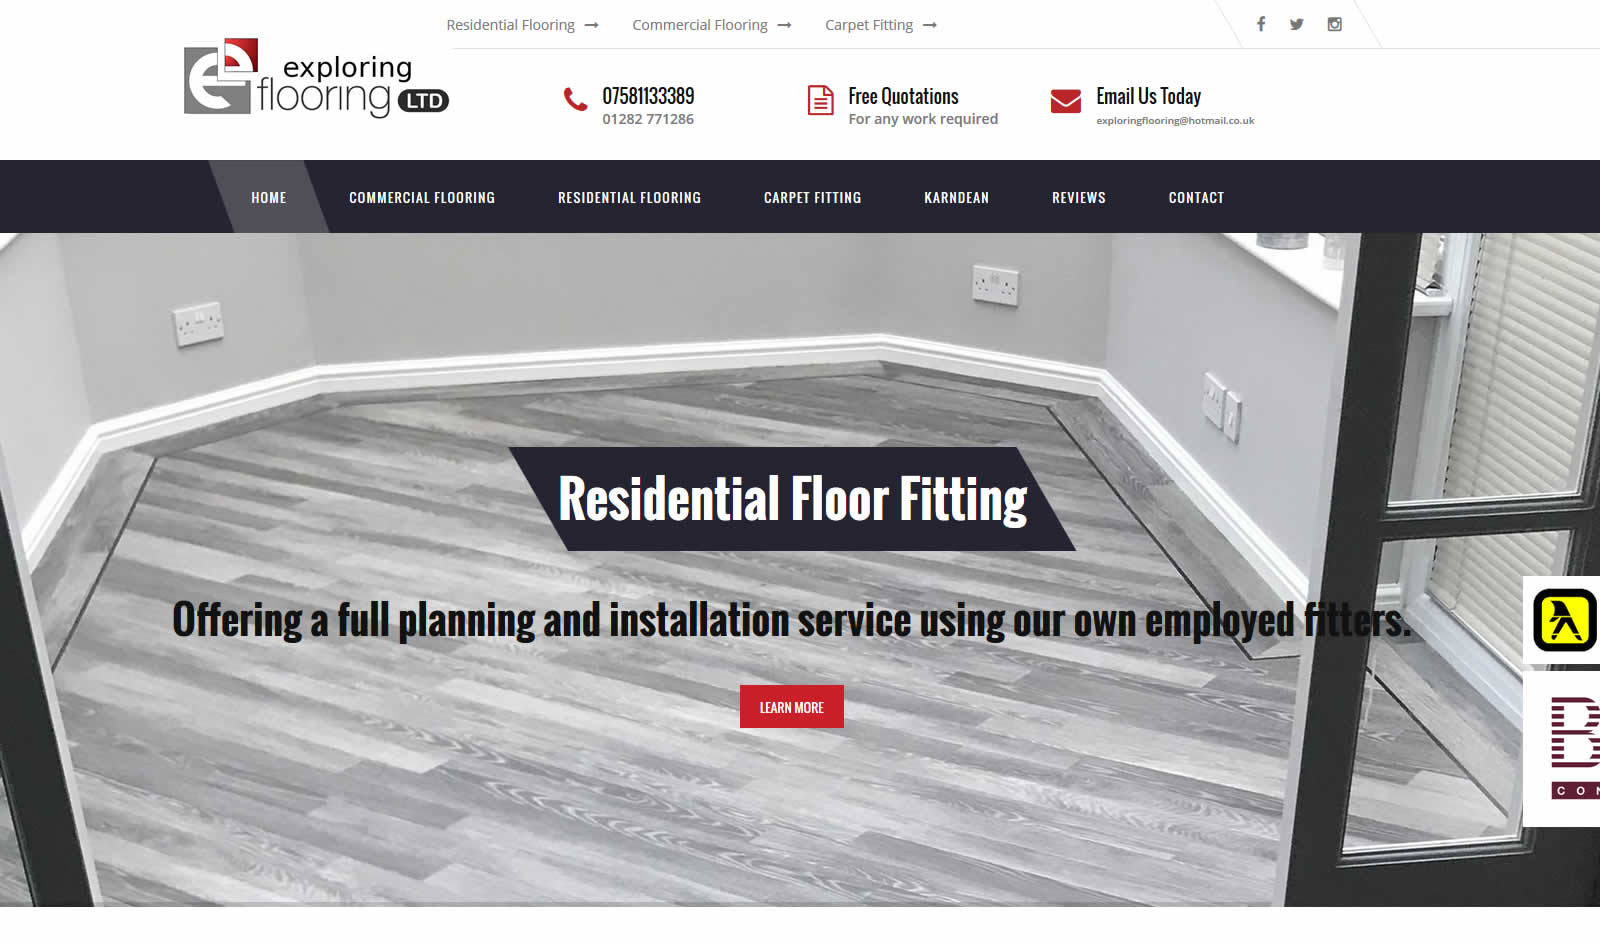 Exploring Flooring Ltd